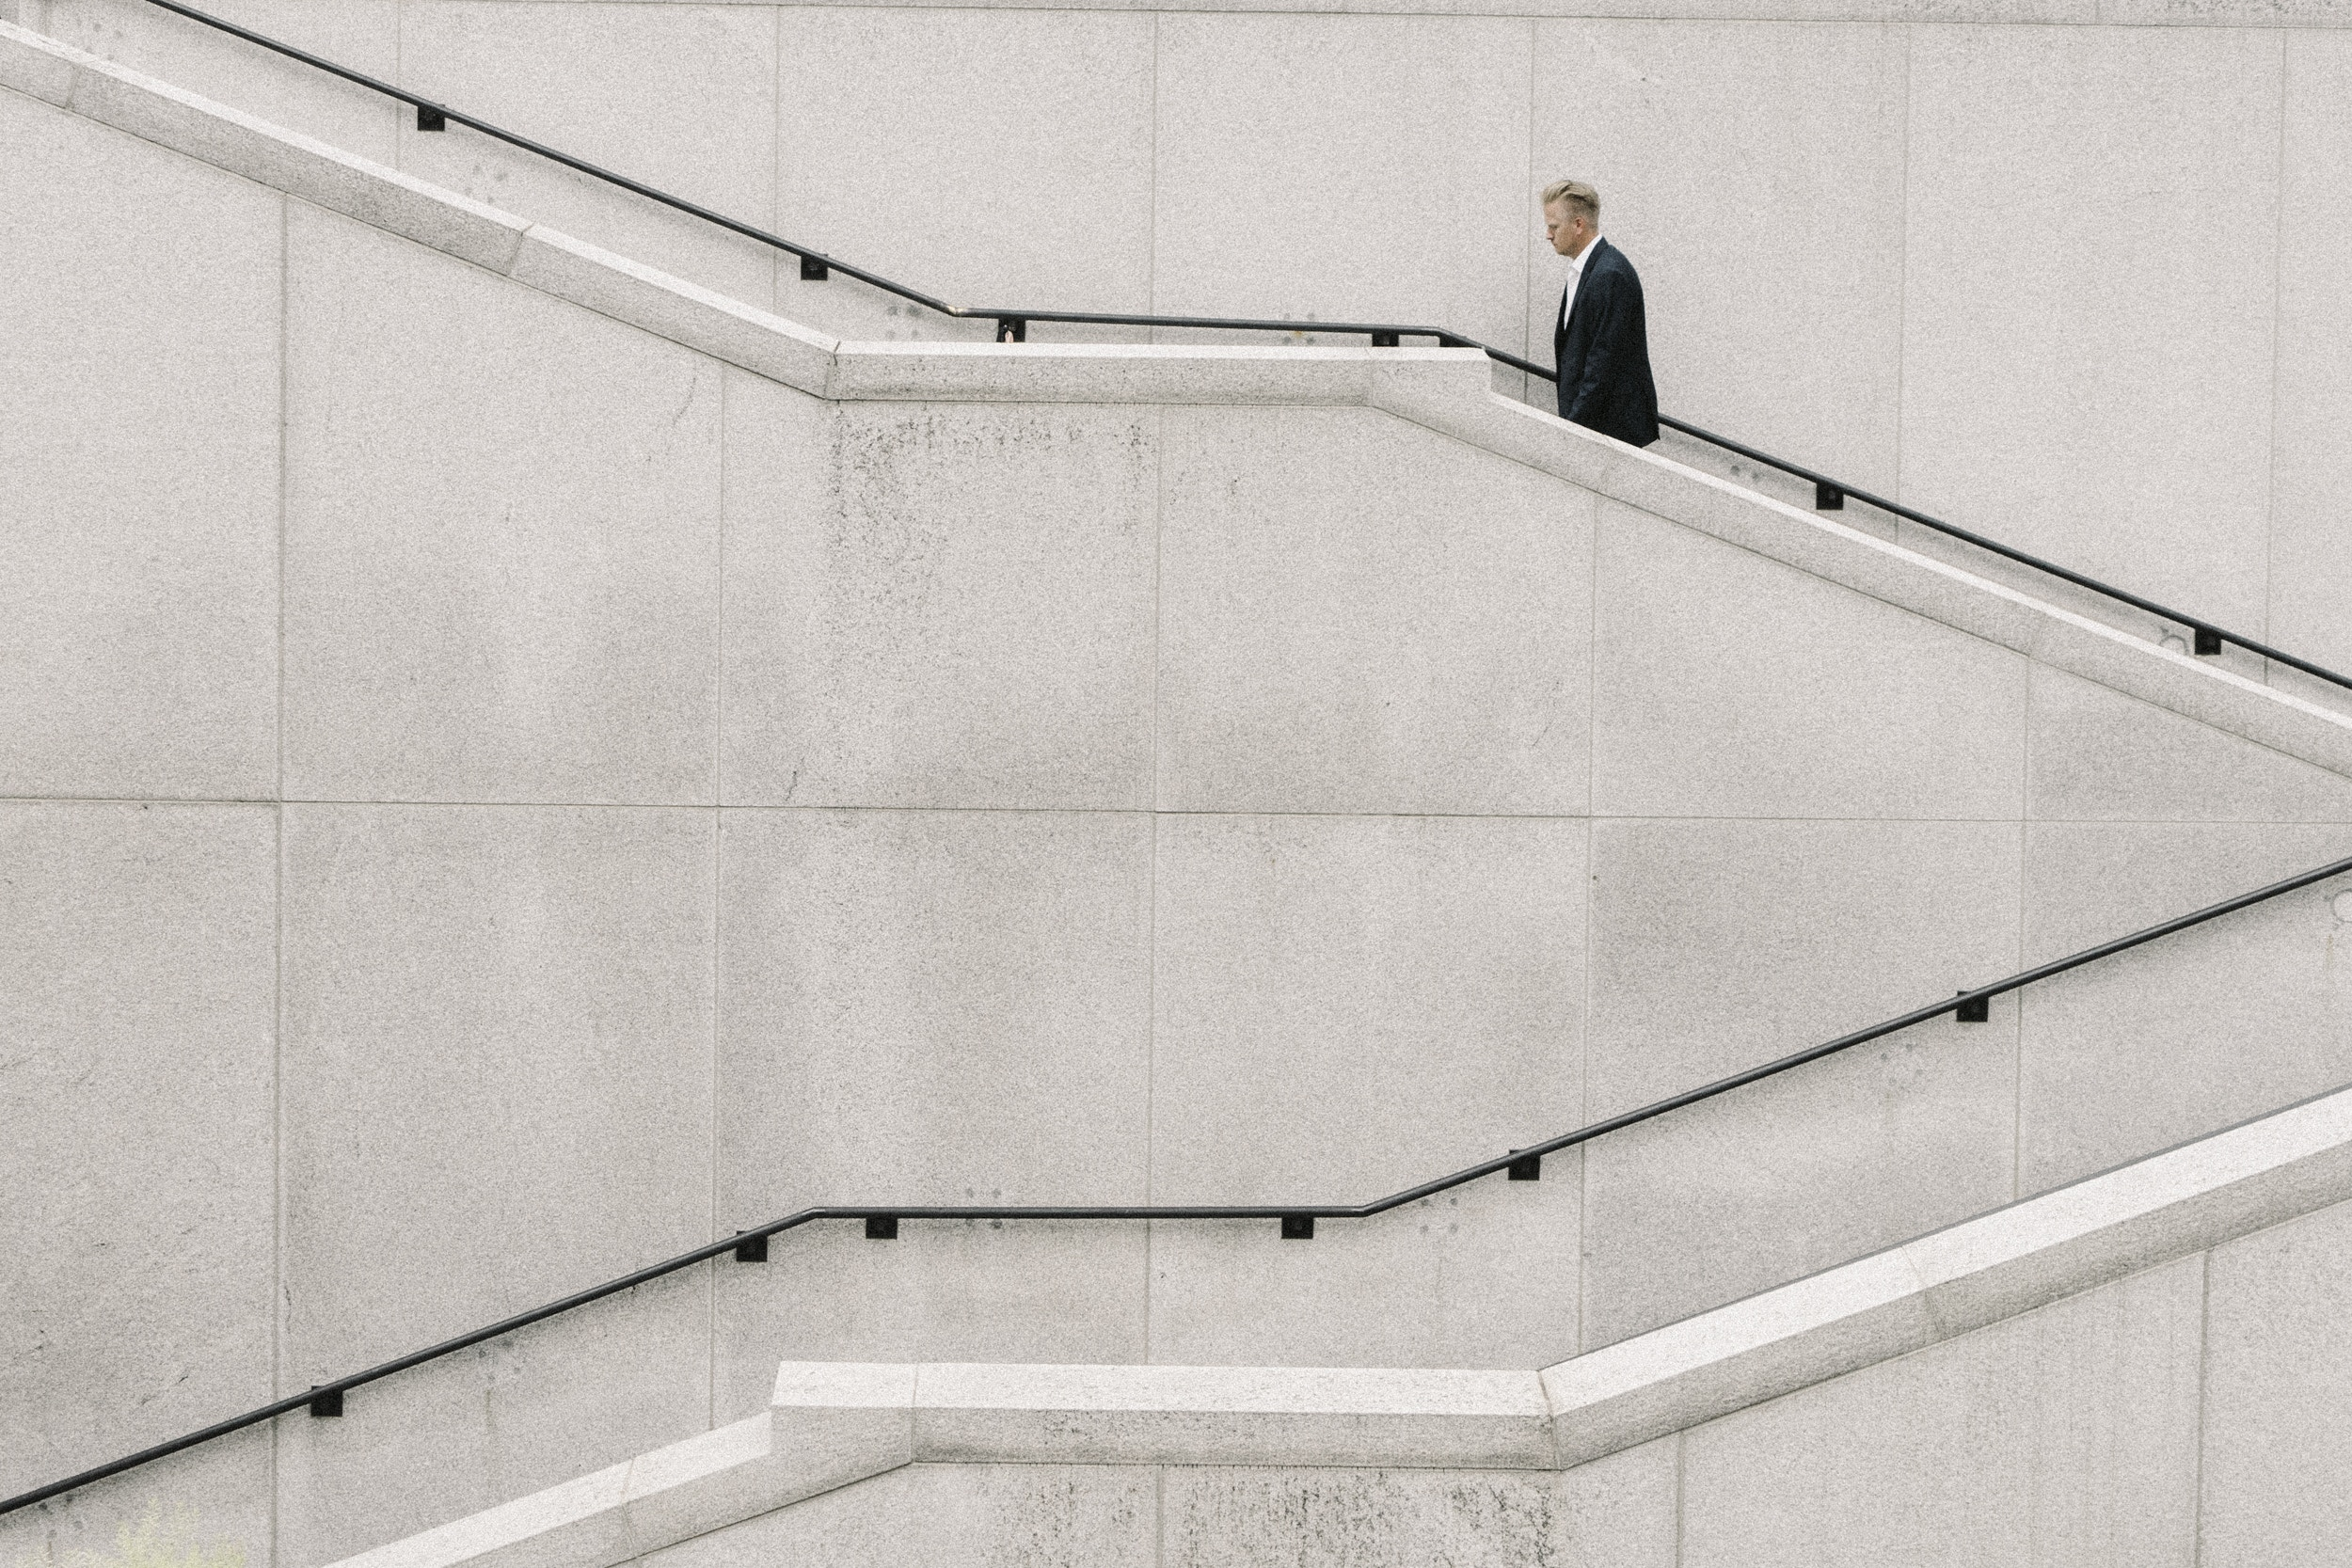 Know How to Fold 'Em: Steps for Properly Dissolving Your Company